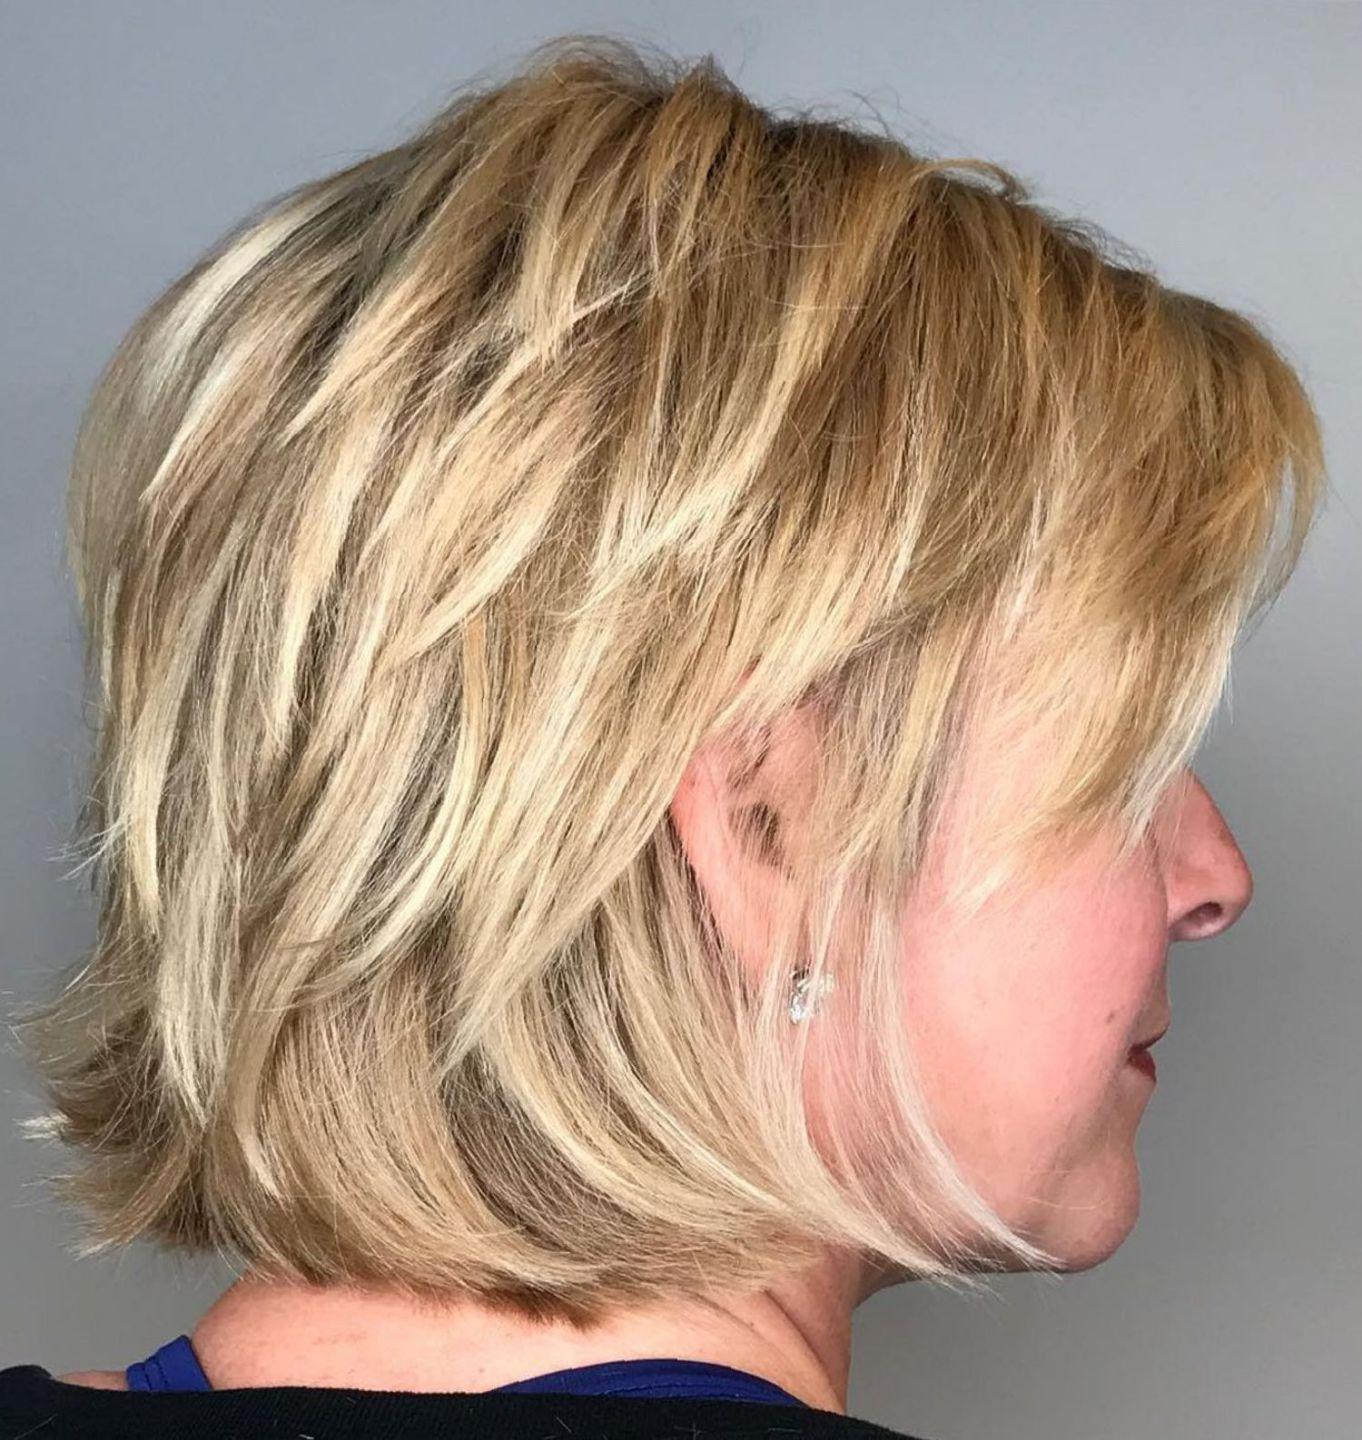 Related Posts 50 Most Universal Modern Shag Haircut Solutions Shag Haircuts Fine Hair And Your Most Short Shag Hairstyles Short Shag Haircuts Shag Hairstyles